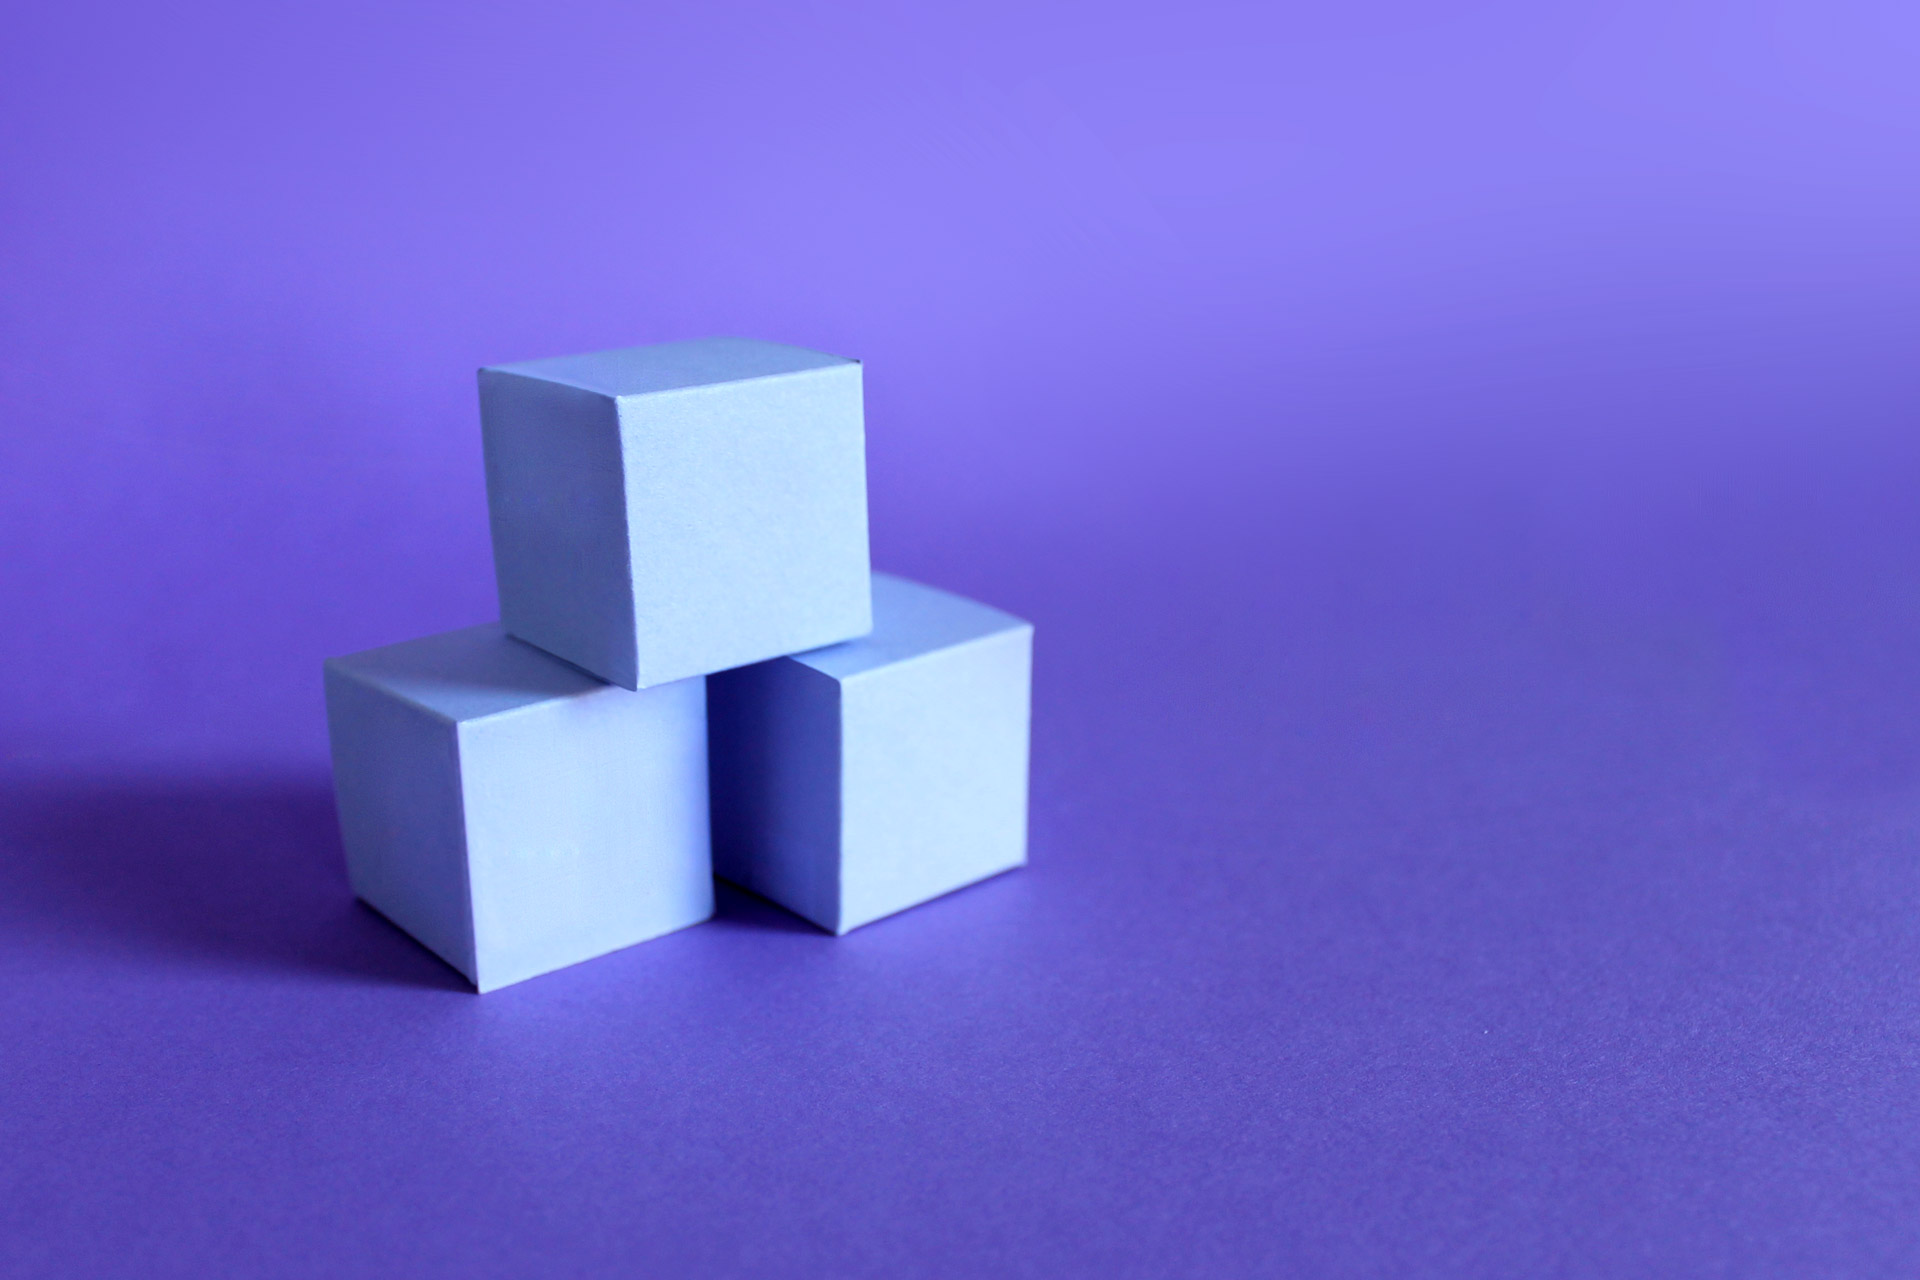 Three stacked purple building blocks